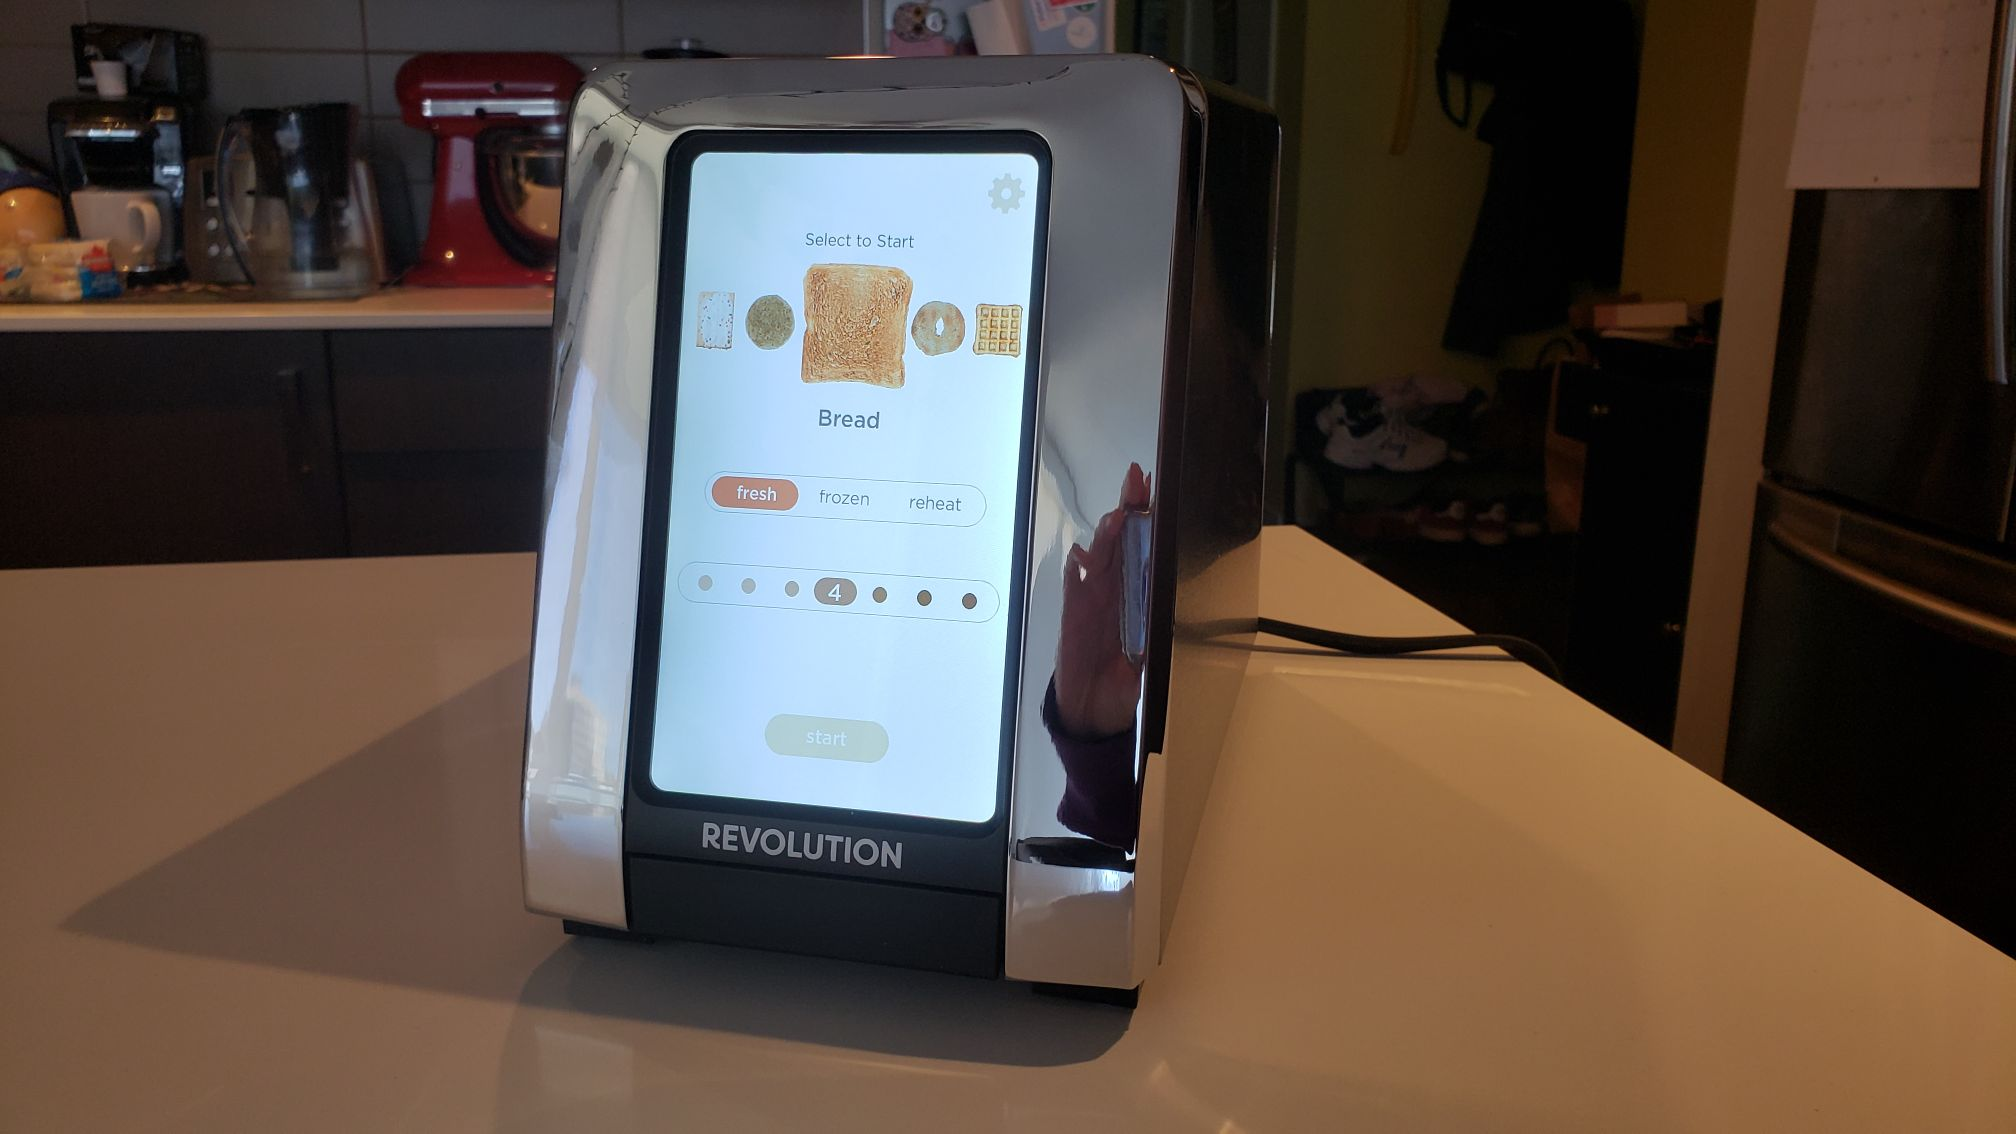 the touchscreen options of the Revolution Toaster